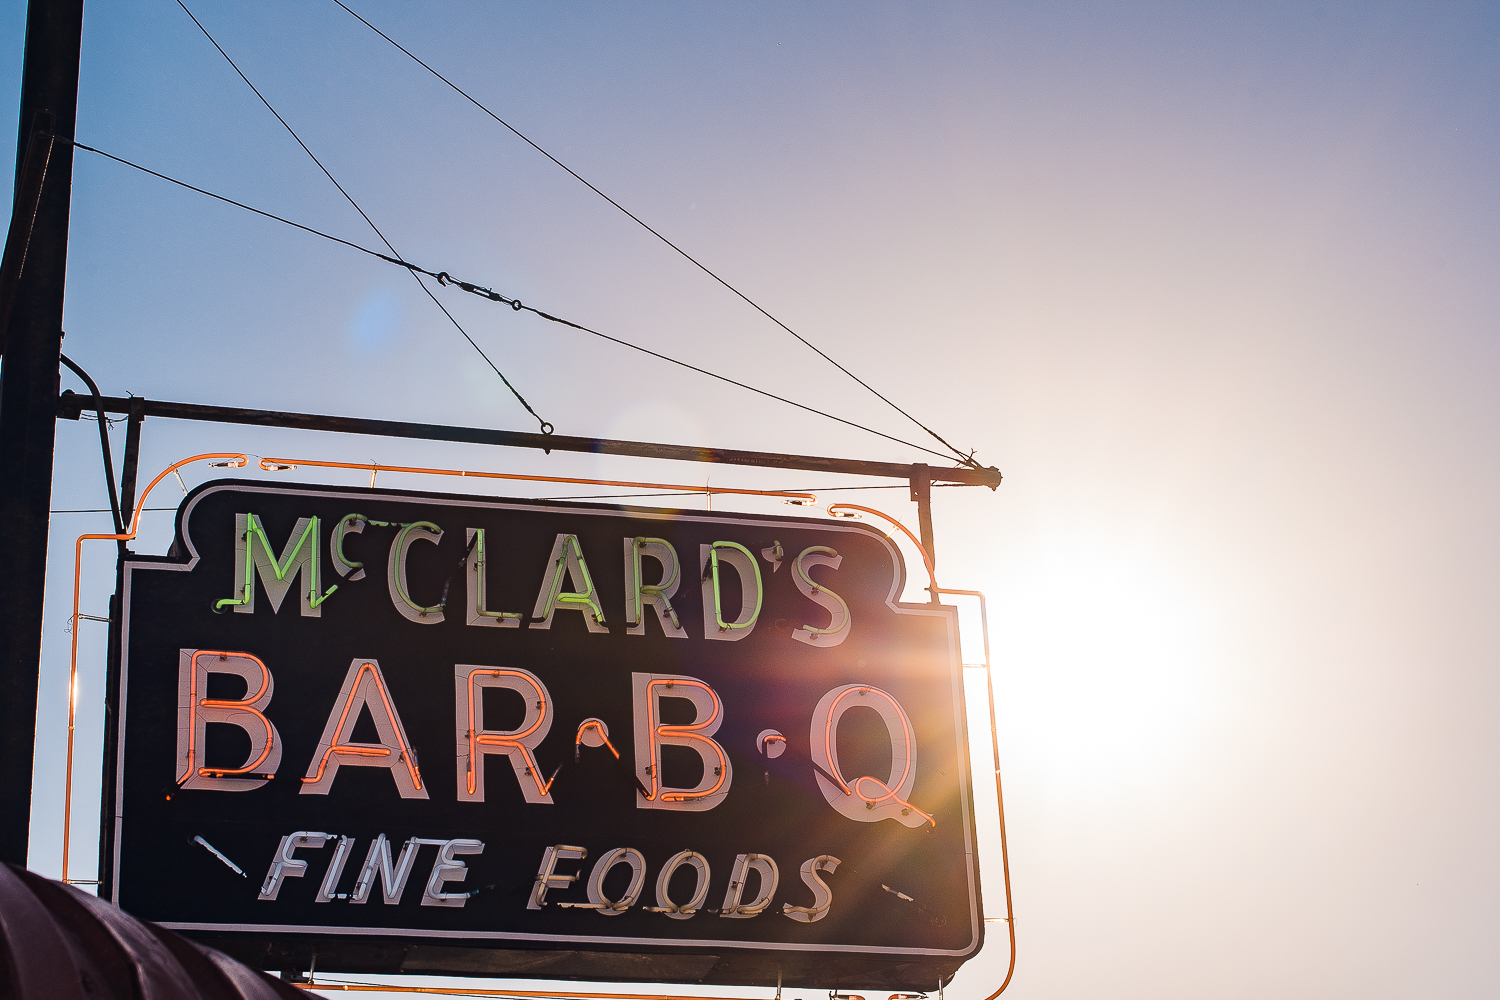 Truly the best BBQ anywhere